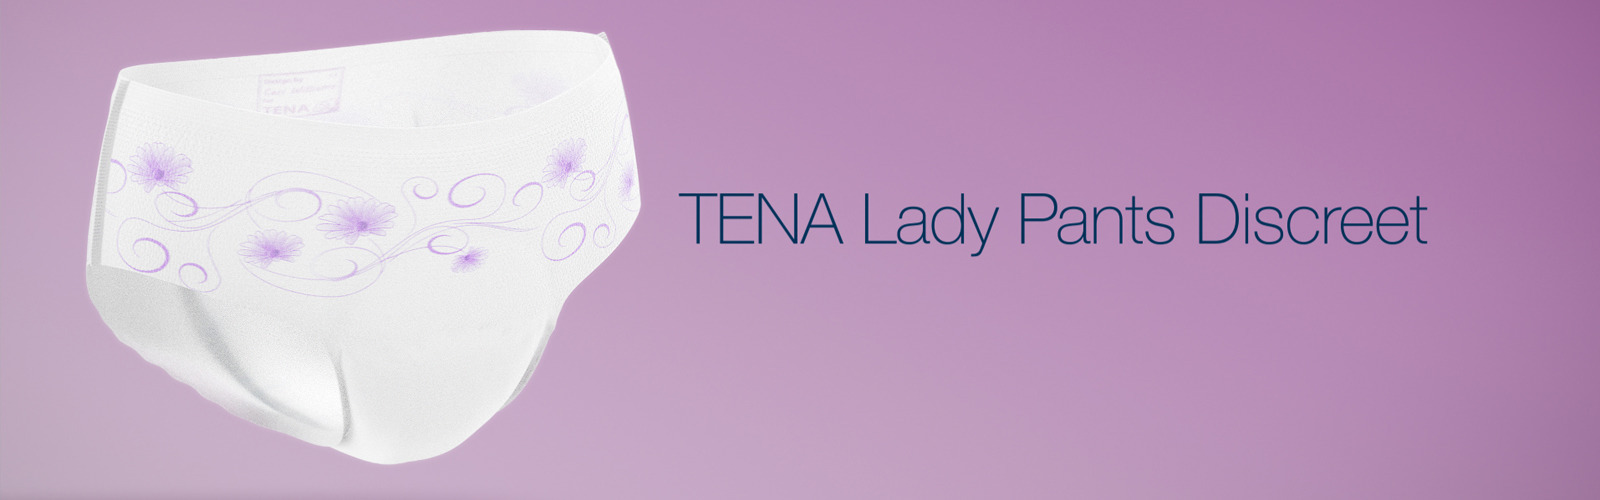 Video om nye TENA Lady Pants Discreet